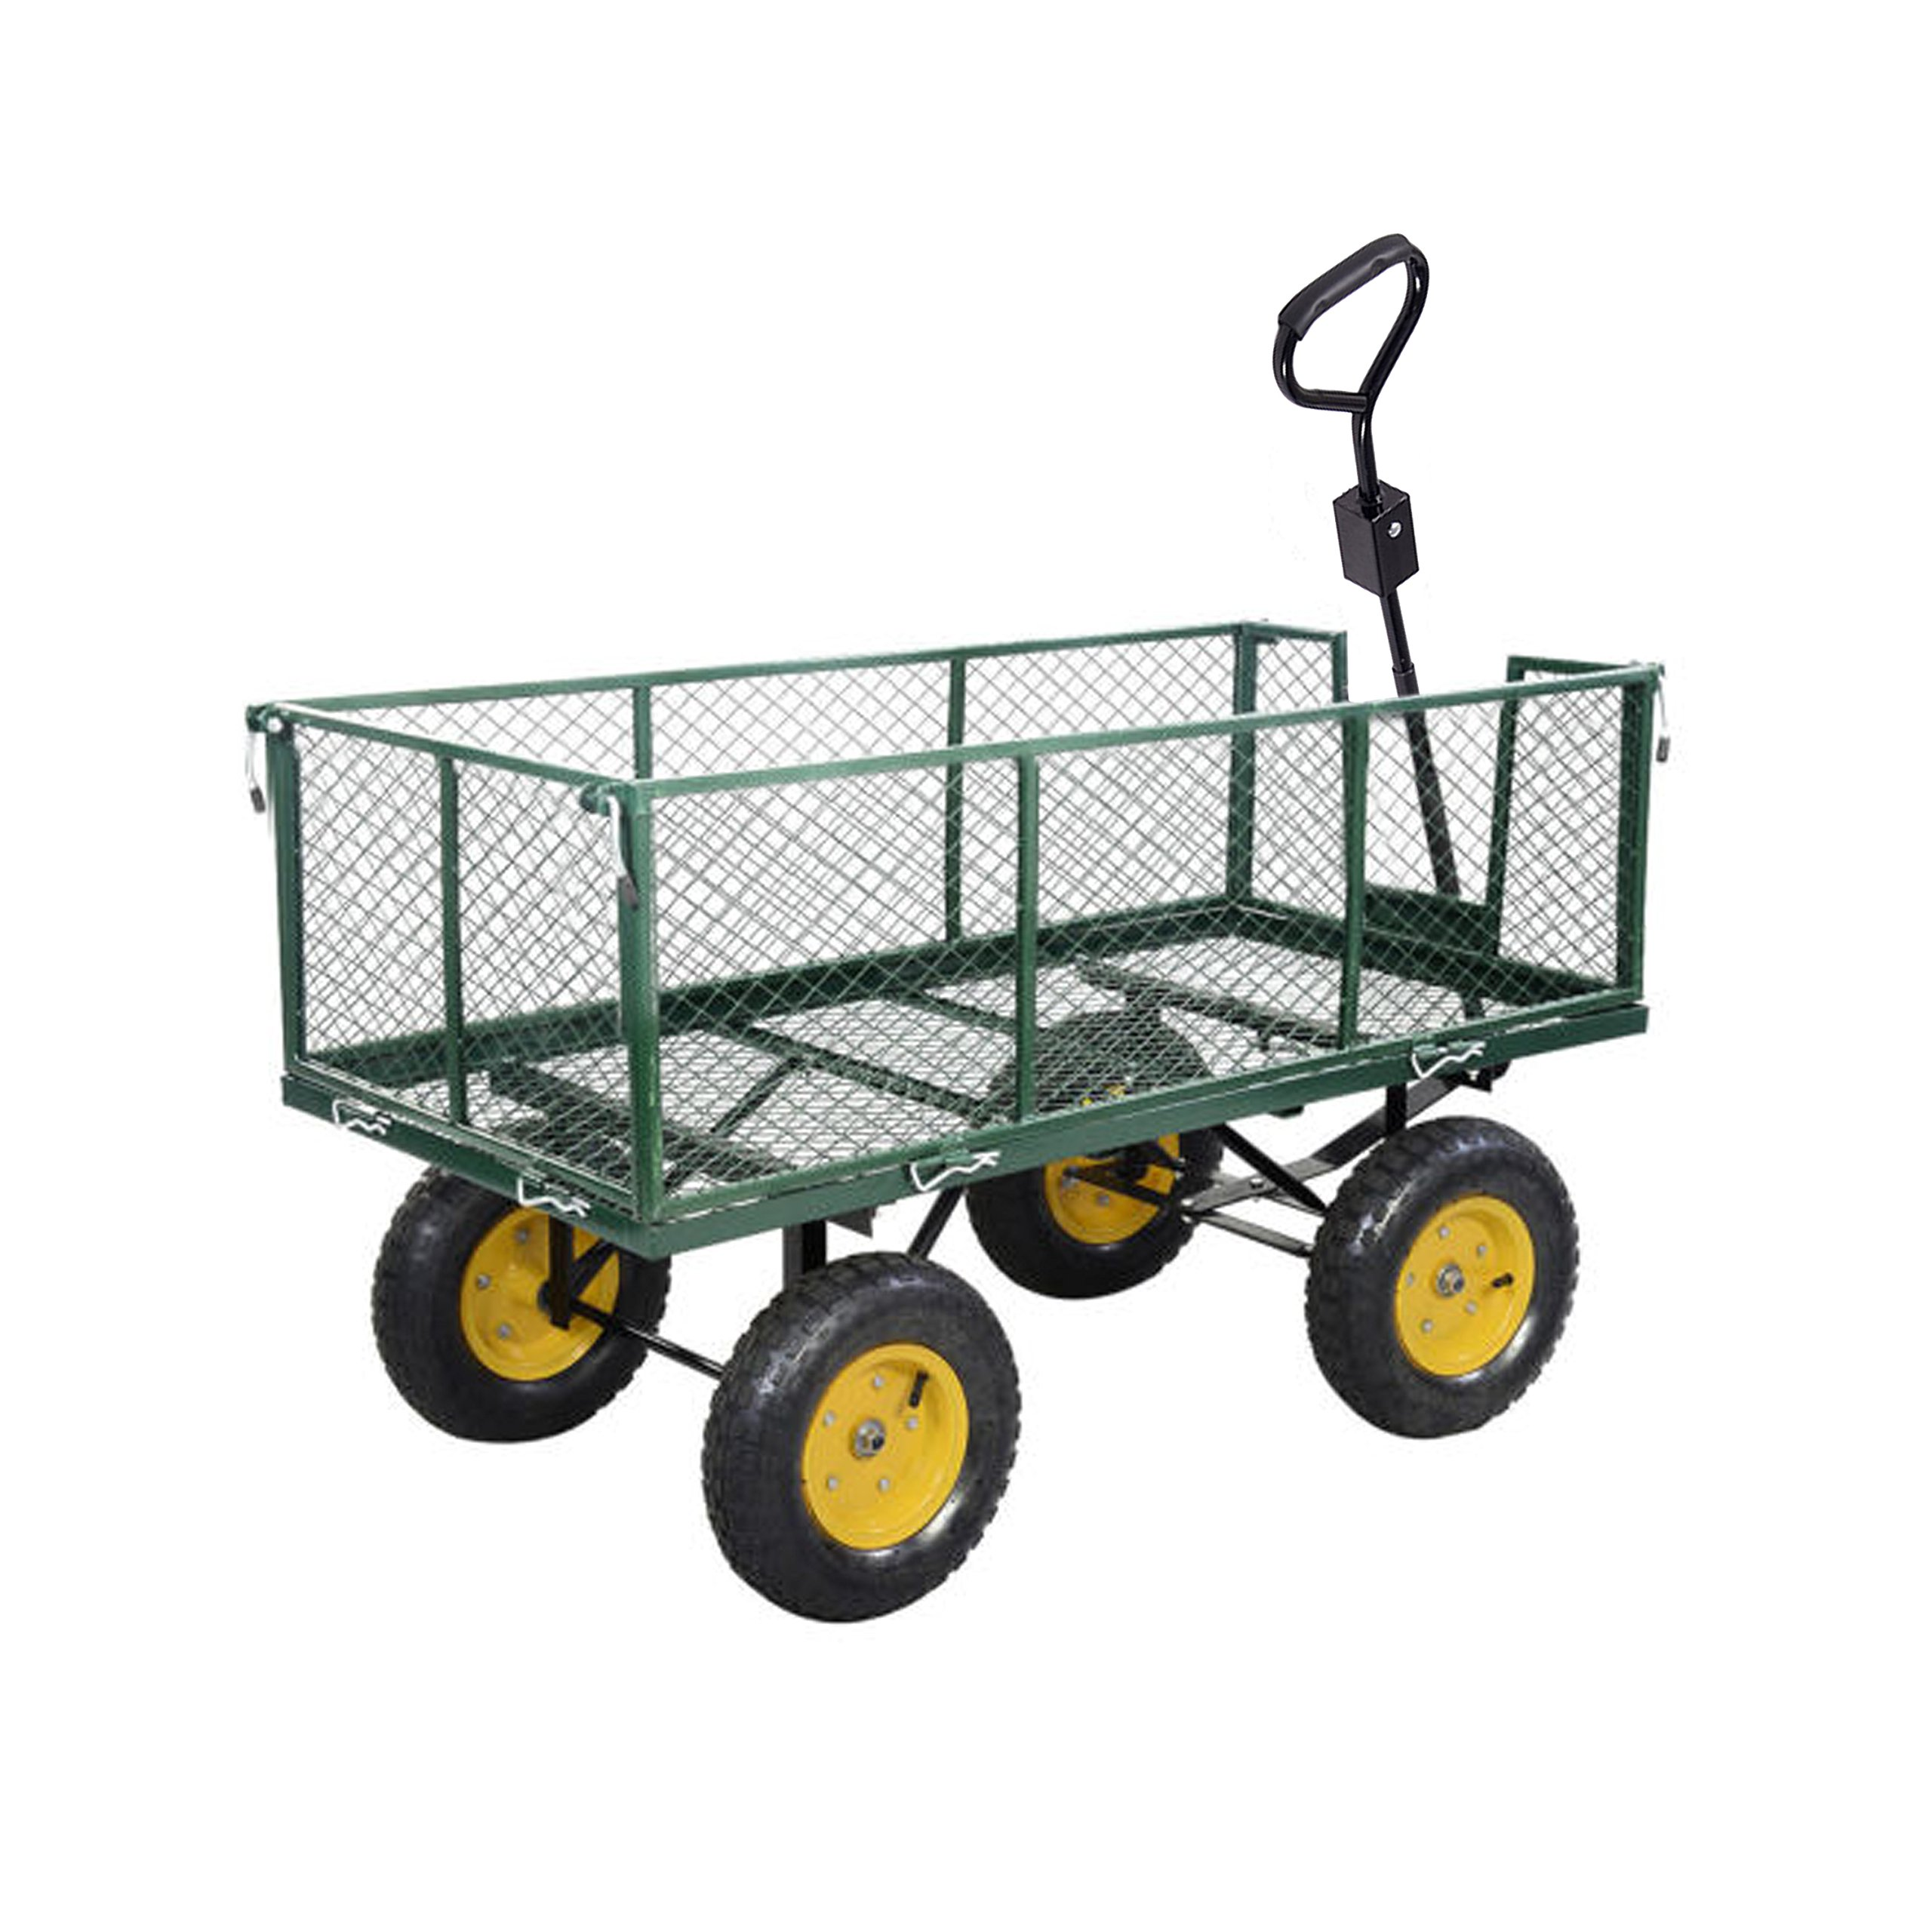 ALEKO TC4205B Farm and Ranch Heavy Duty Removable Steel Mesh Sides Flatbed Garden Mesh Cart With Padded Pull Handle, 1,000-Pound Capacity